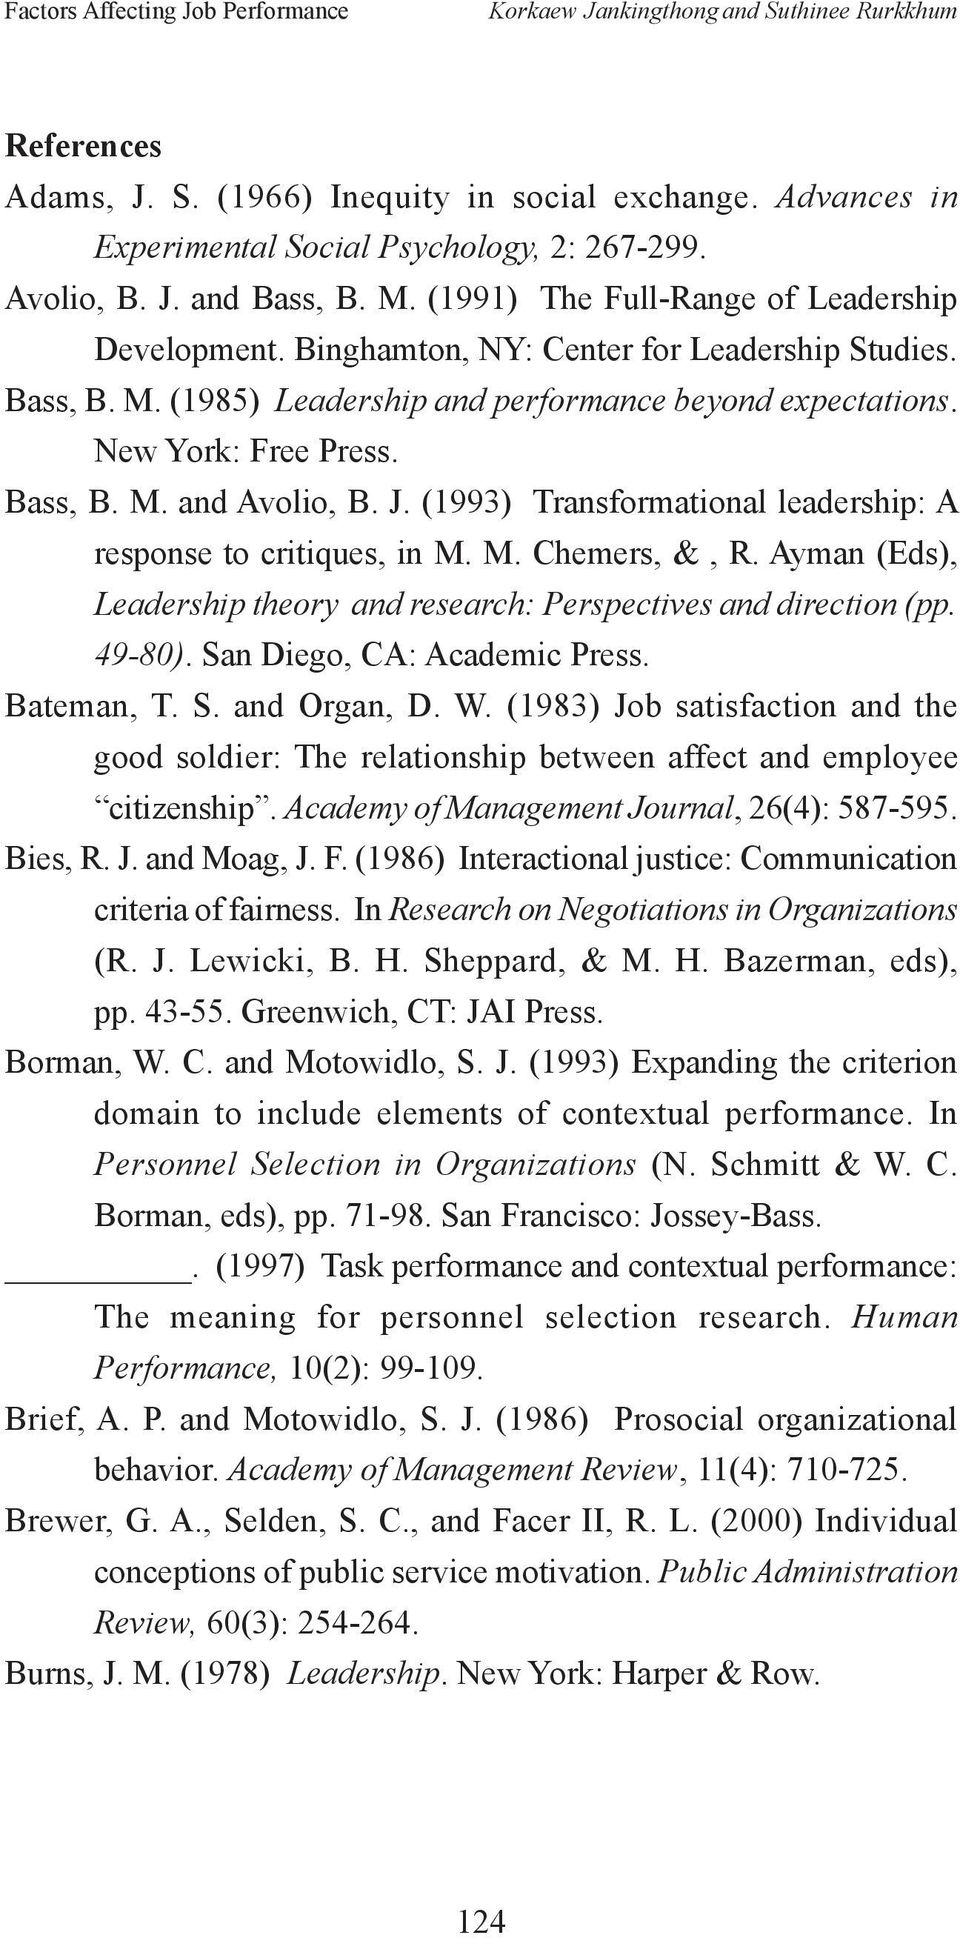 New York: Free Press. Bass, B. M. and Avolio, B. J. (1993) Transformational leadership: A response to critiques, in M. M. Chemers, &, R.